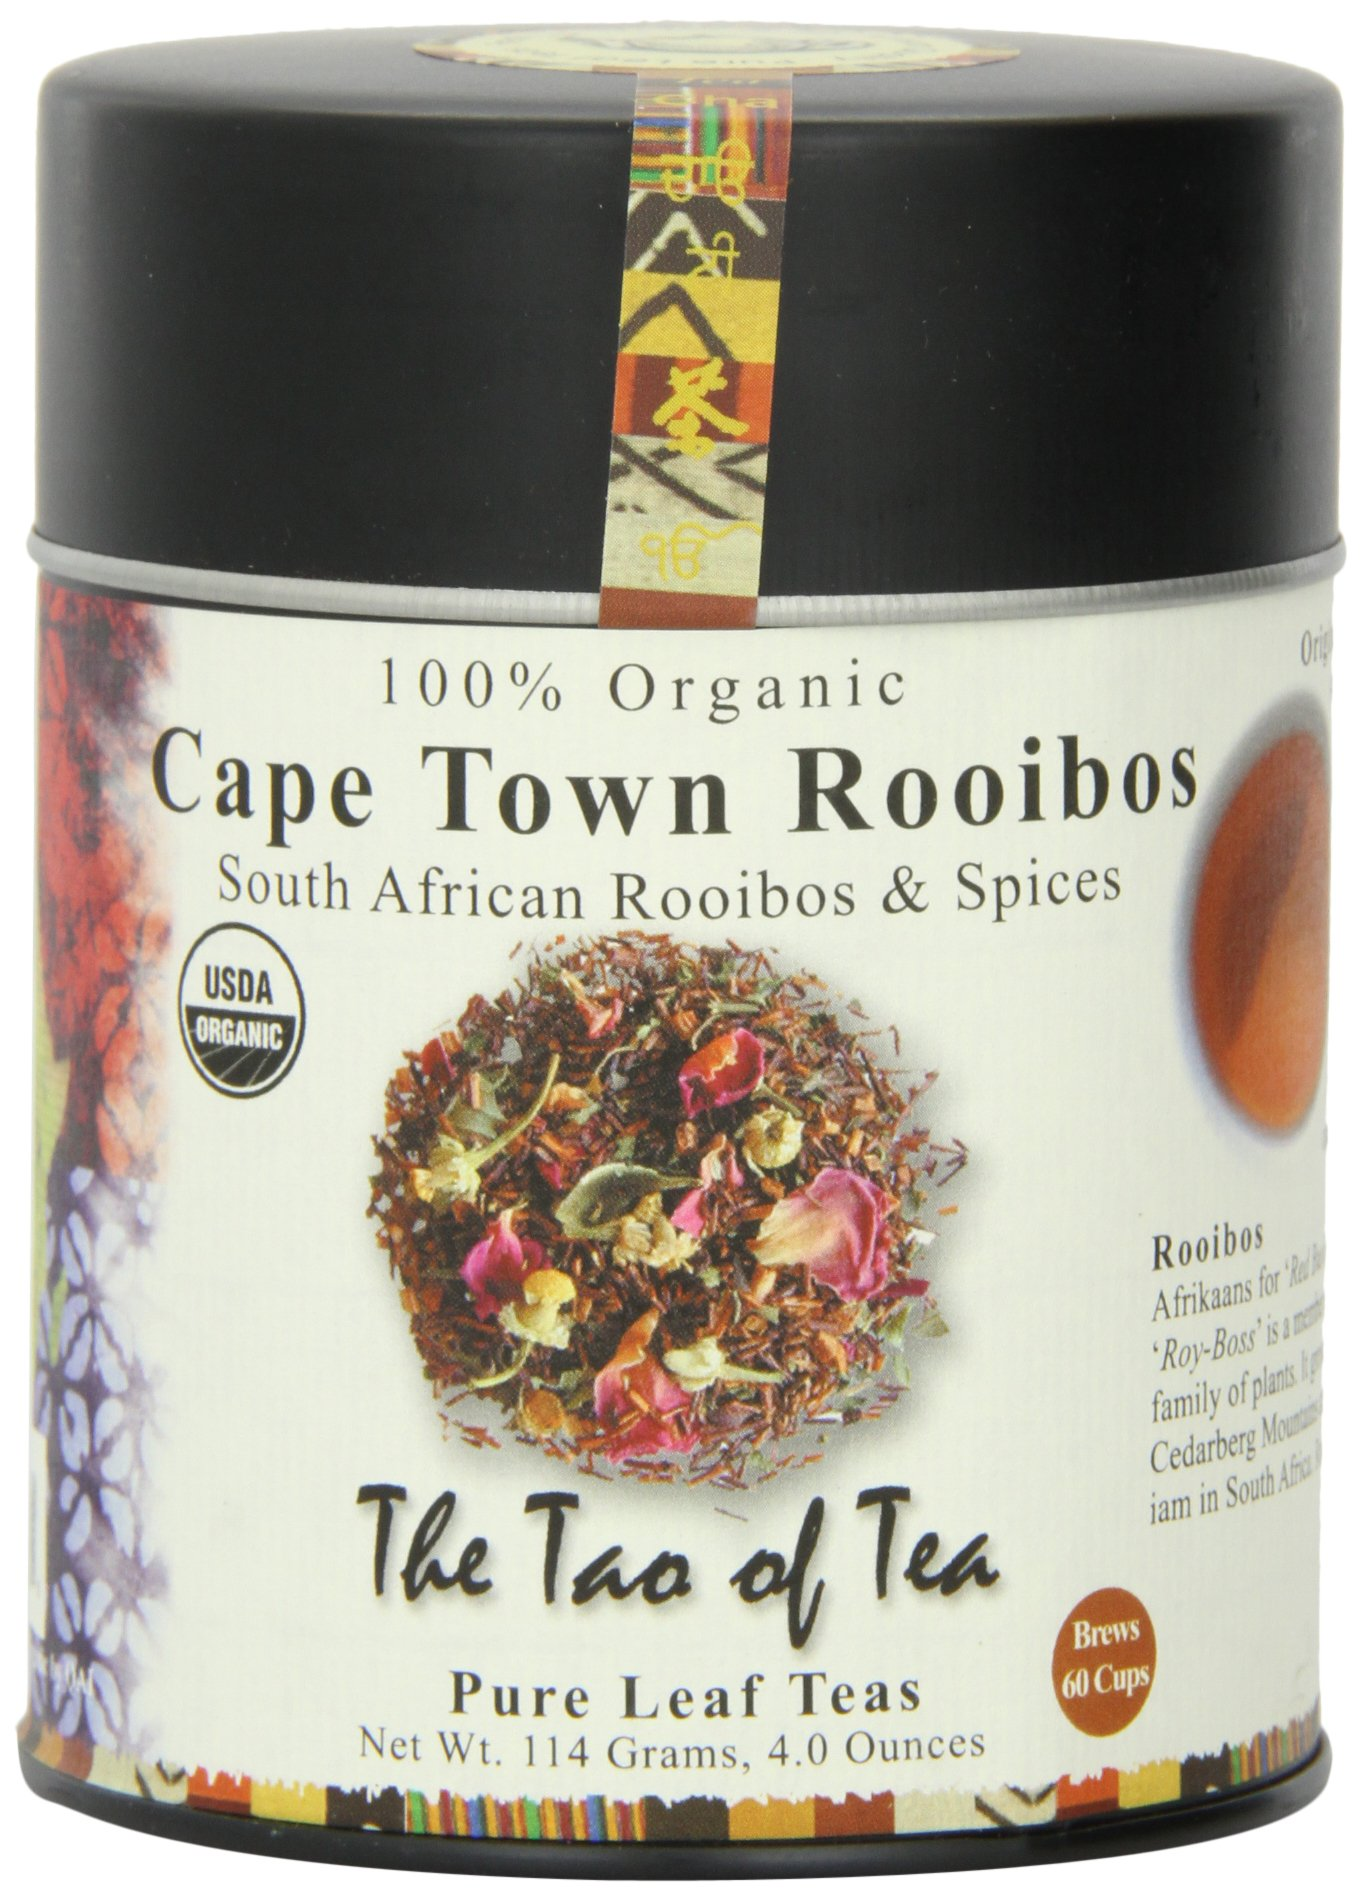 The Tao of Tea, Cape Town Rooibos Tea, Loose Leaf, 4-Ounce Tins (Pack of 3) by The Tao of Tea